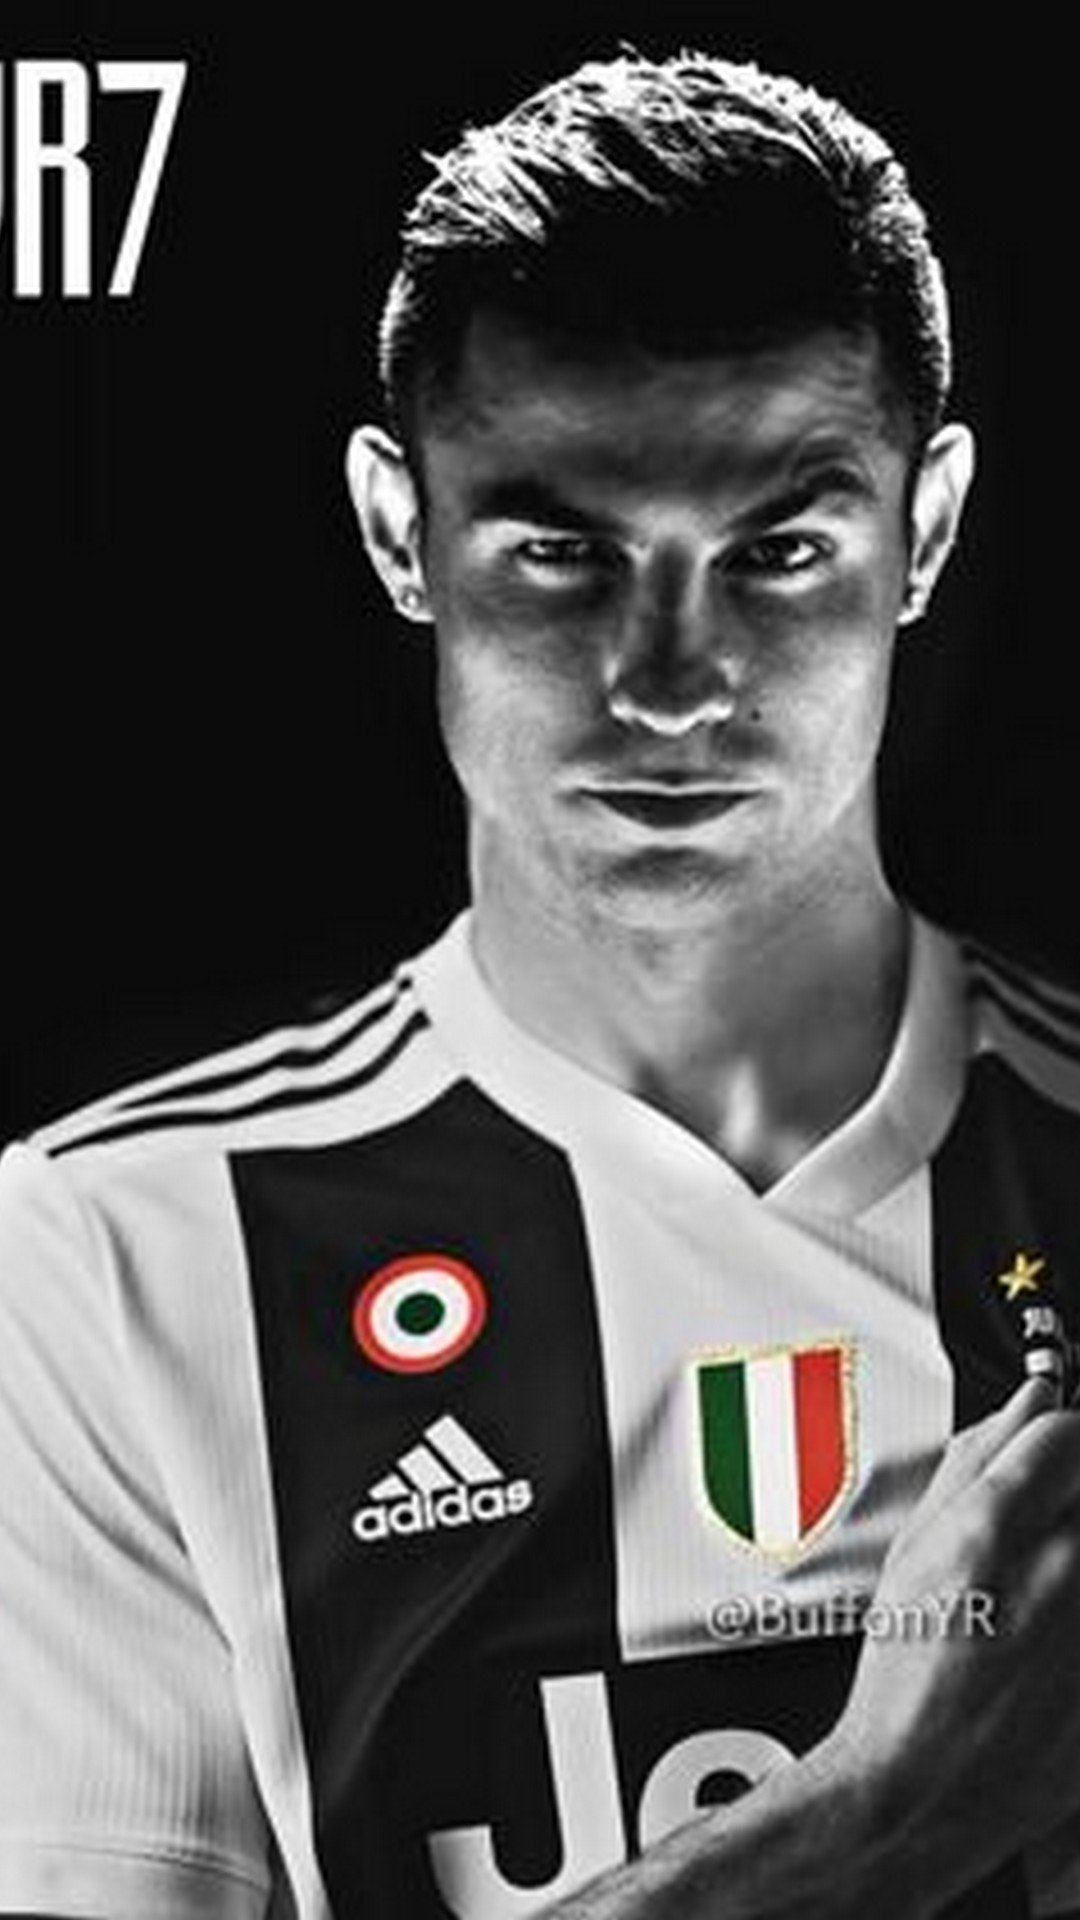 Cristiano Ronaldo Juventus Wallpaper Android   2019 Android Wallpapers 1080x1920